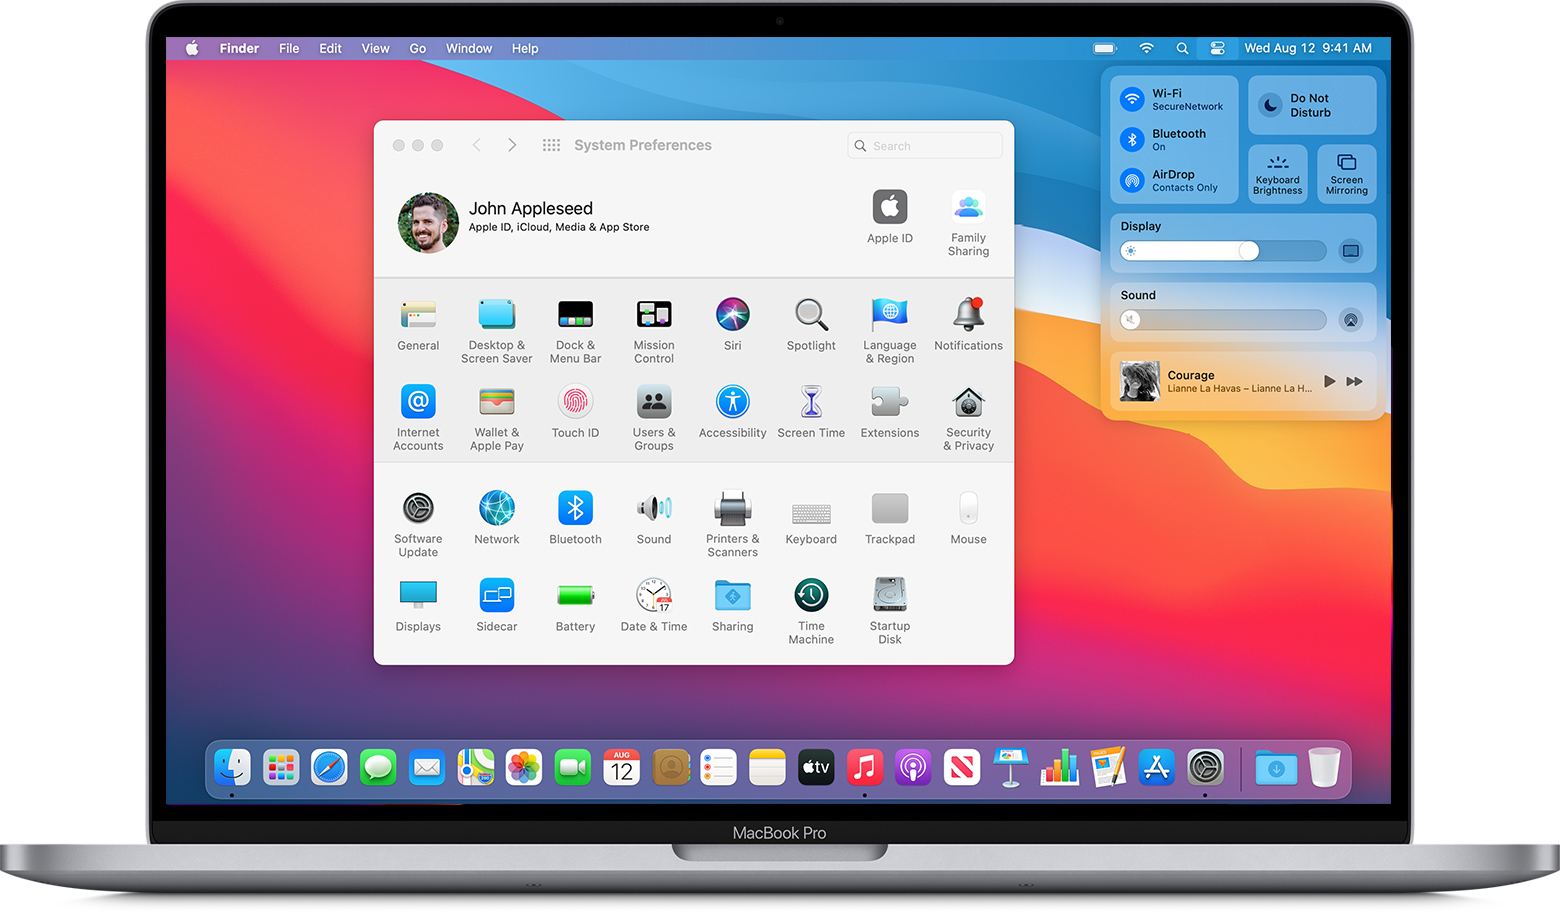 Tips for switching to Apple Mac from PC